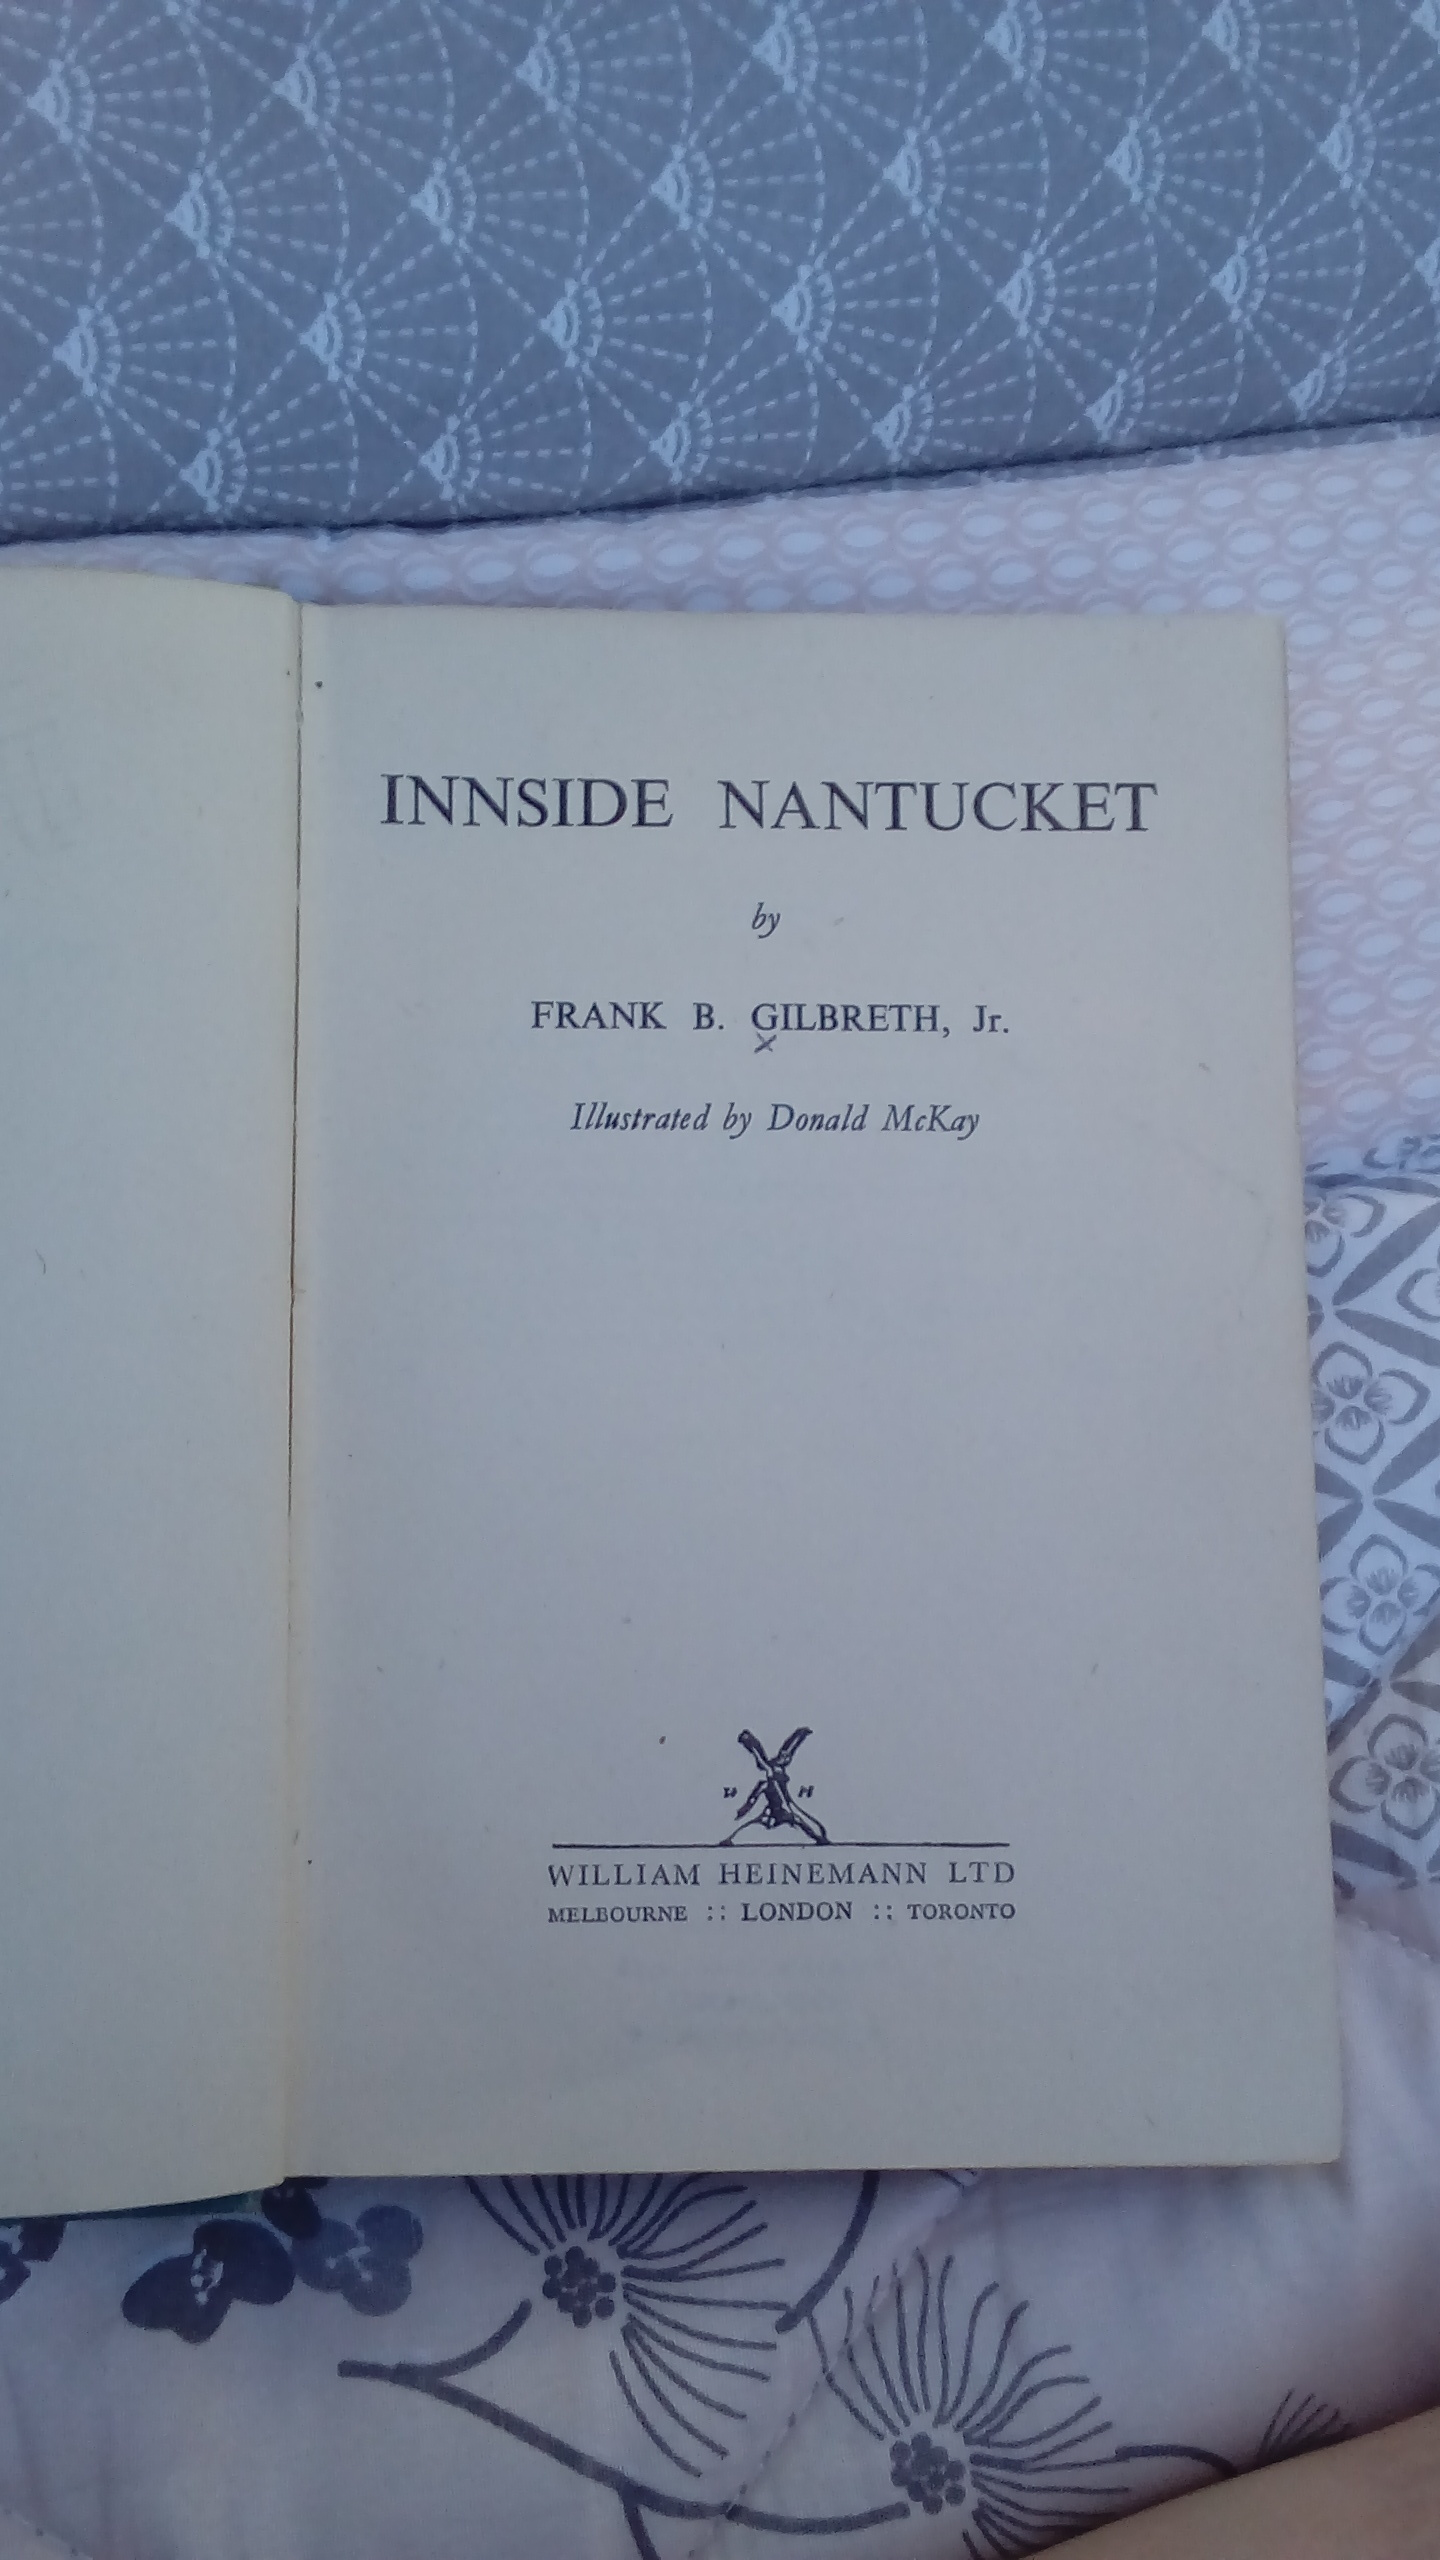 Innside Nantucket - found this book from the fifties at the library